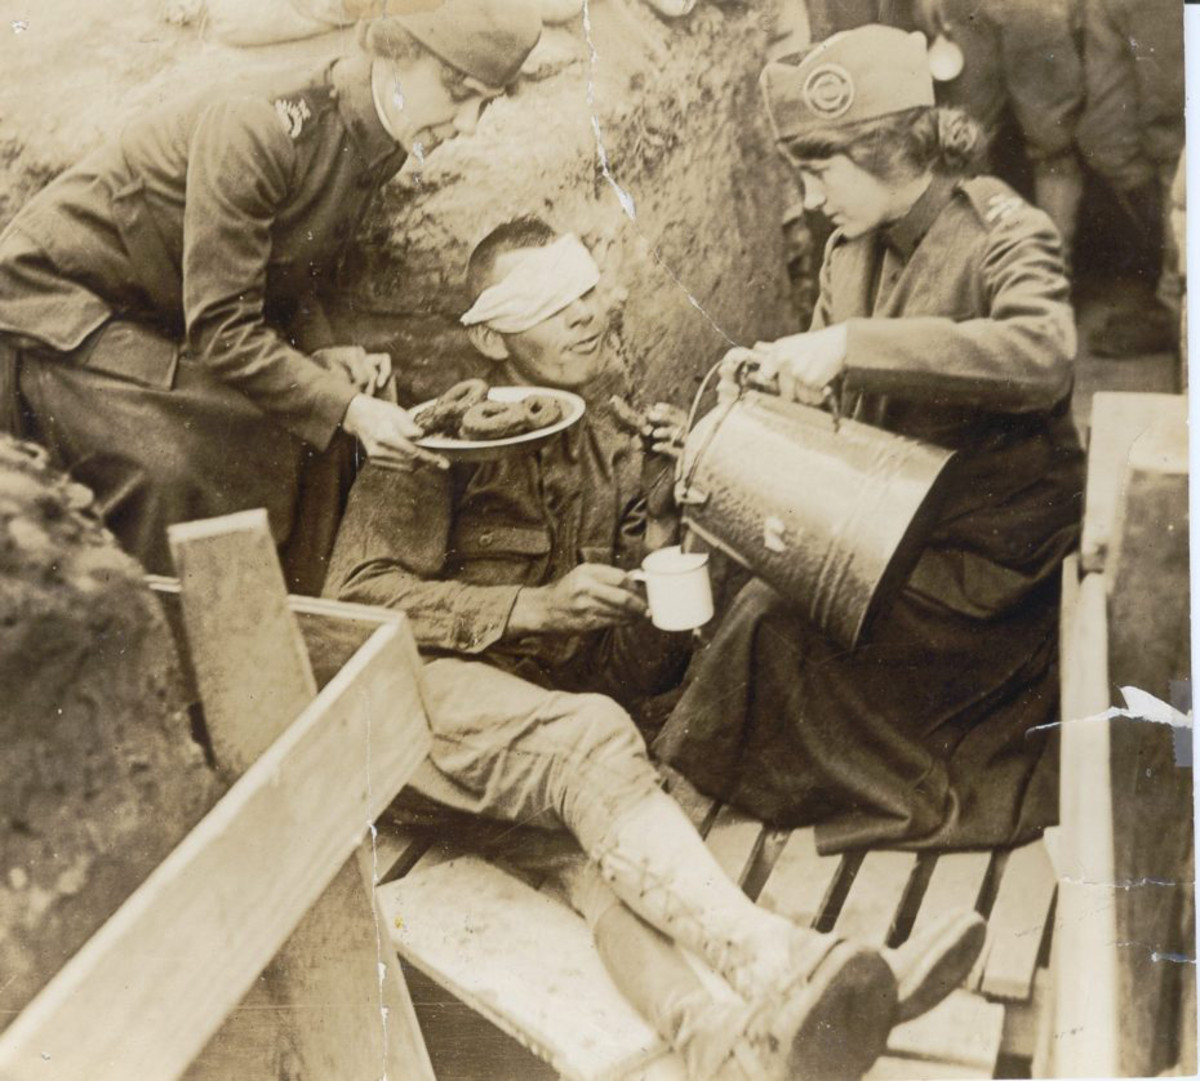 Donut Lassies serve coffee and doughnuts to a wounded soldier at the front line.